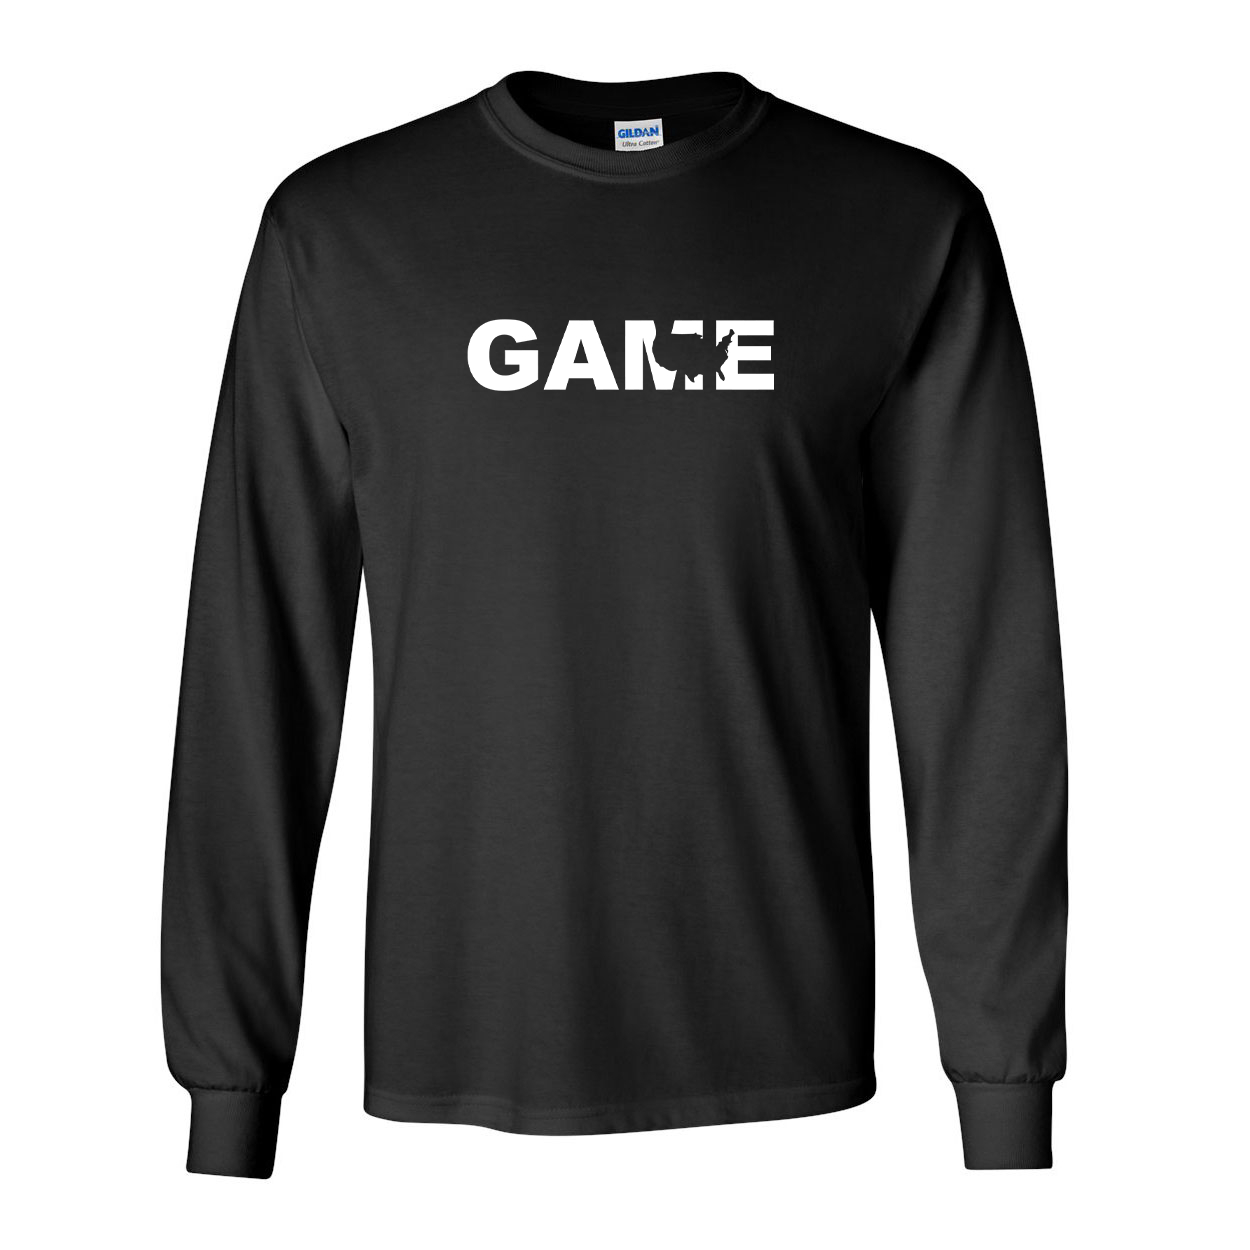 Game United States Classic Long Sleeve T-Shirt Black (White Logo)